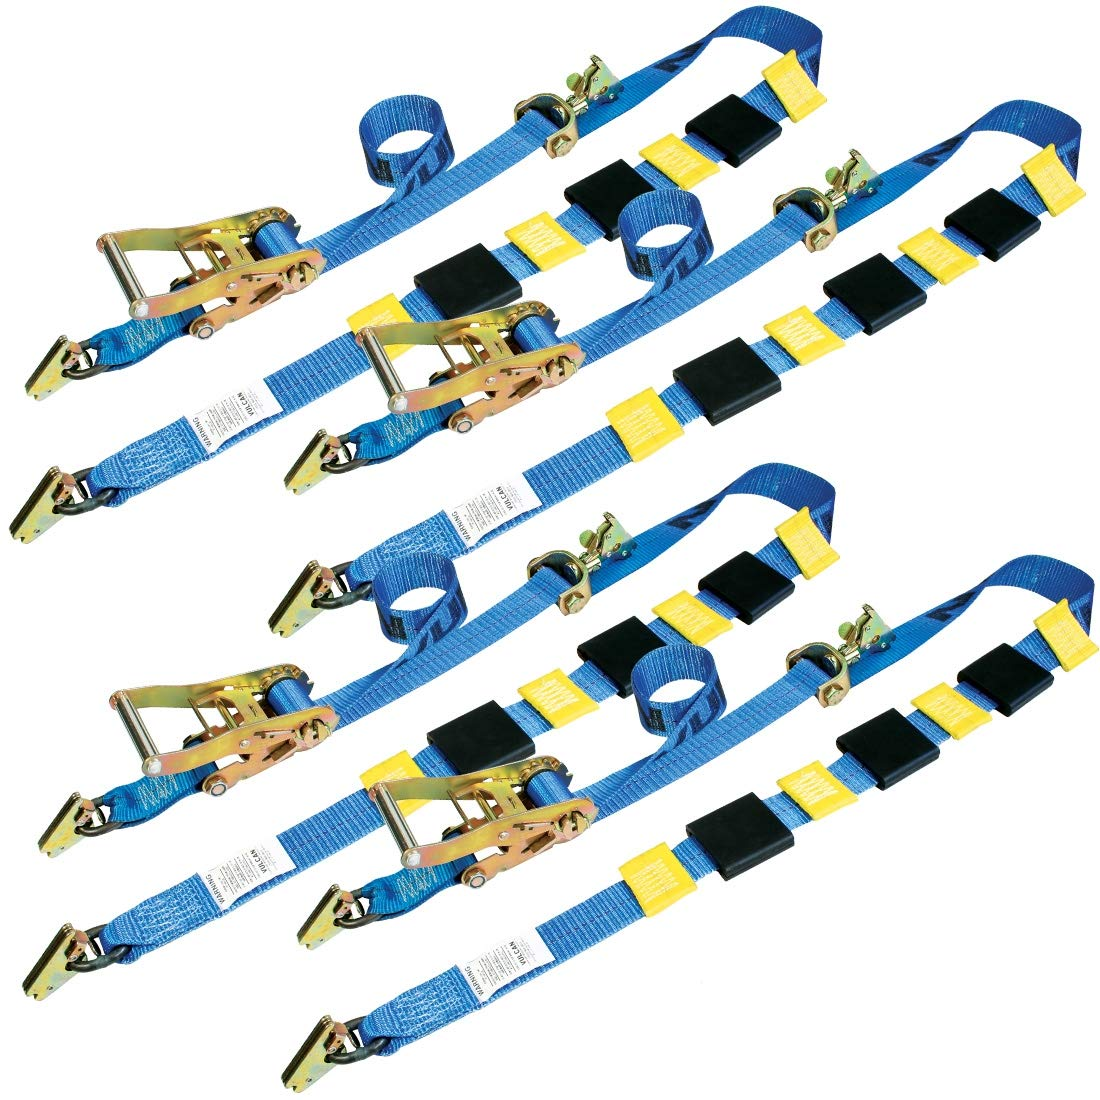 Vulcan Classic Three Cleat Auto Tie Down System with Rolling Idler and E-Track Fittings - 3300 lbs. SWL (120'' - Pack of 4)